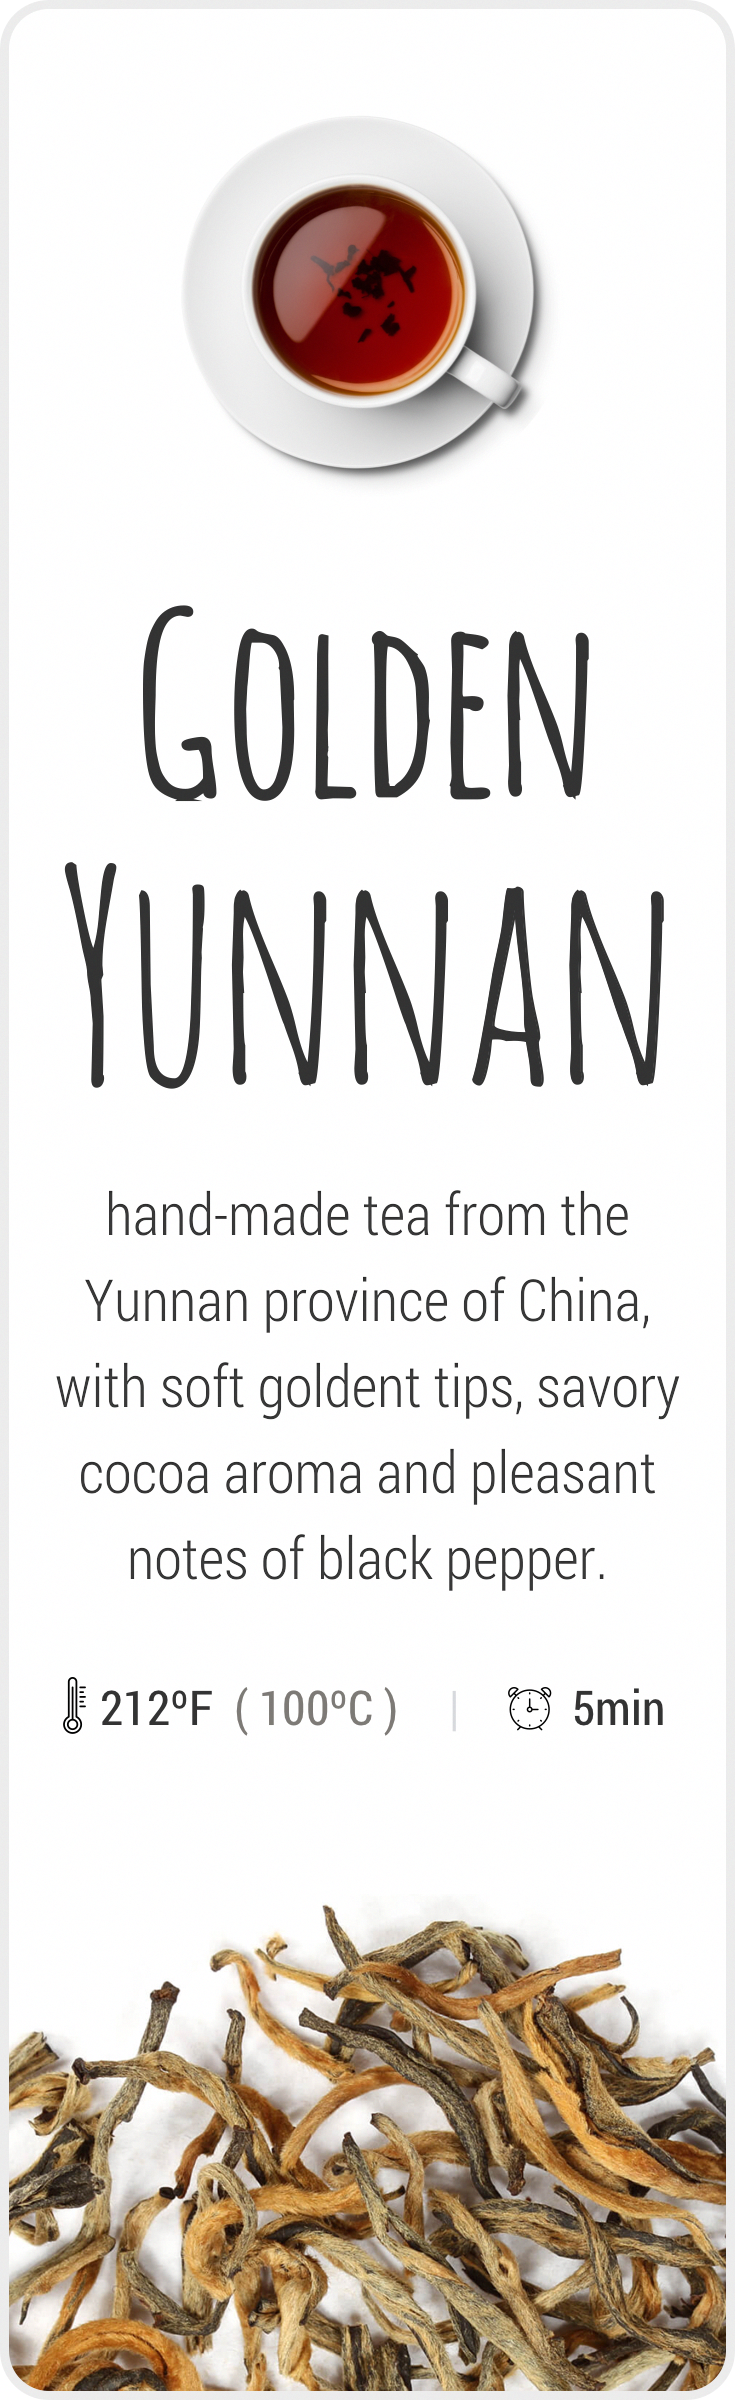 Farmfresh tea from Yunnan, China, the birthplace of tea